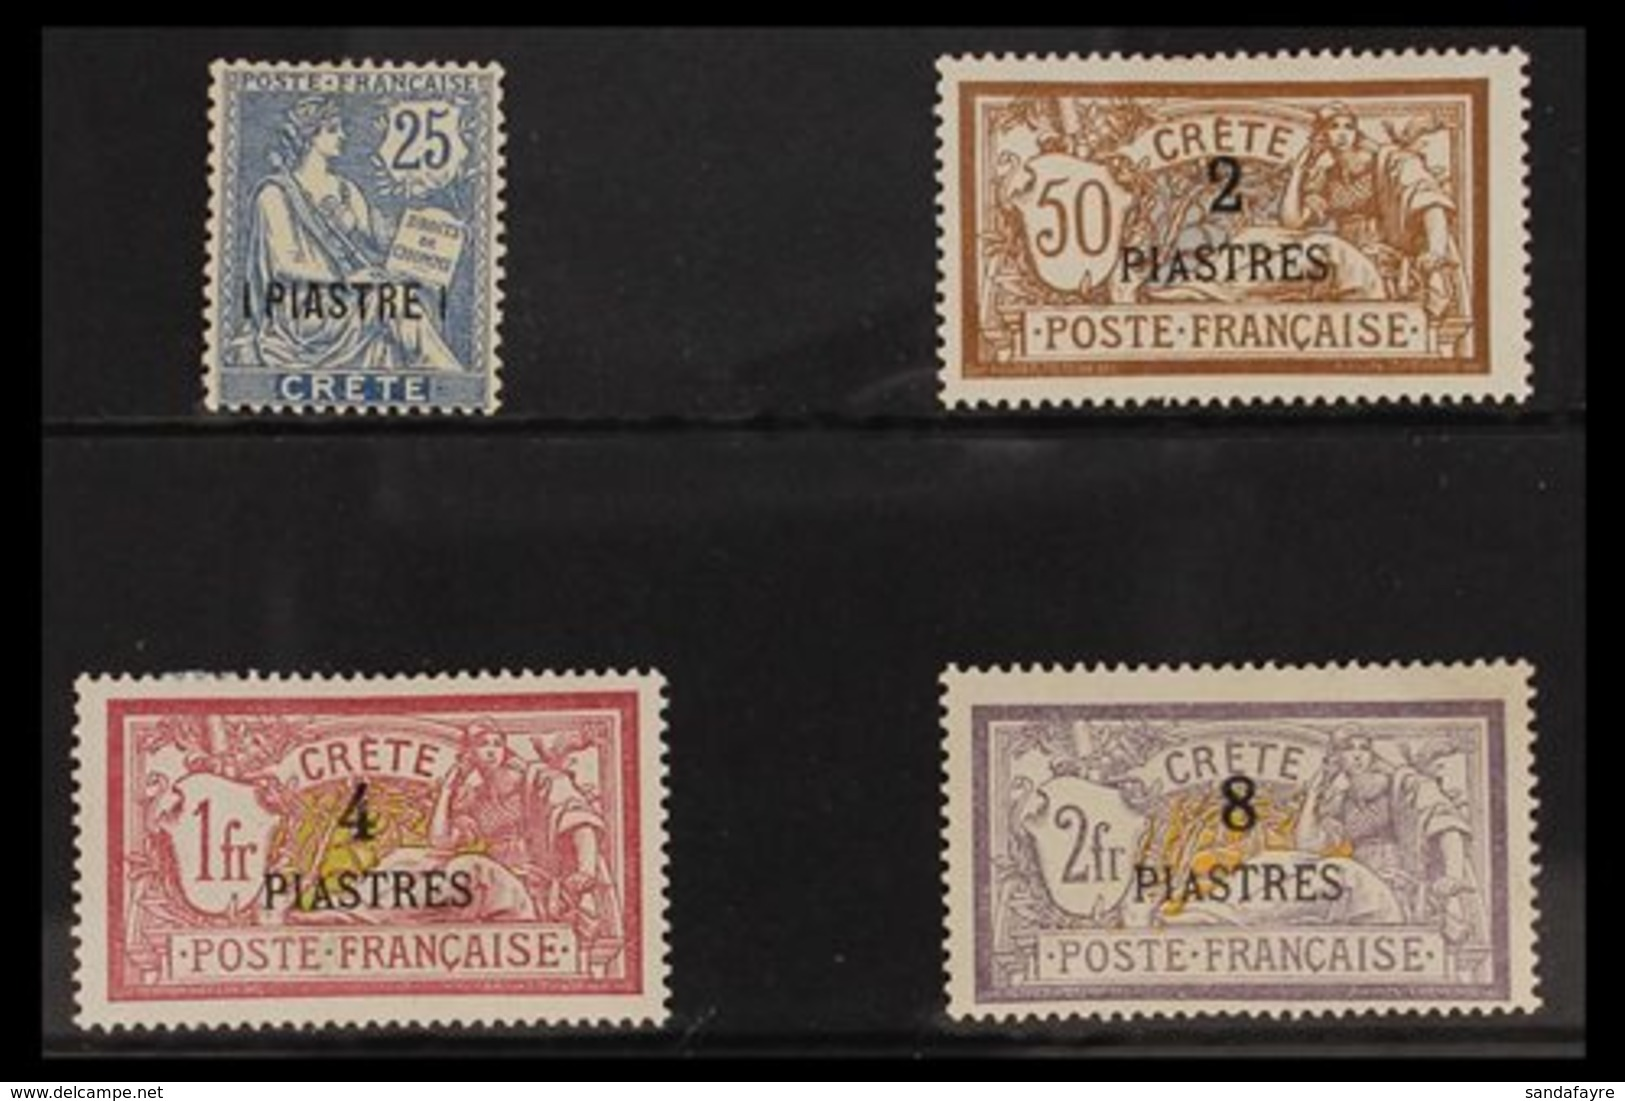 CRETE 1903 Surcharged Set To 8pi On 2f, Fine Mint (4 Stamps) For More Images, Please Visit Http://www.sandafayre.com/ite - France (former Colonies & Protectorates)